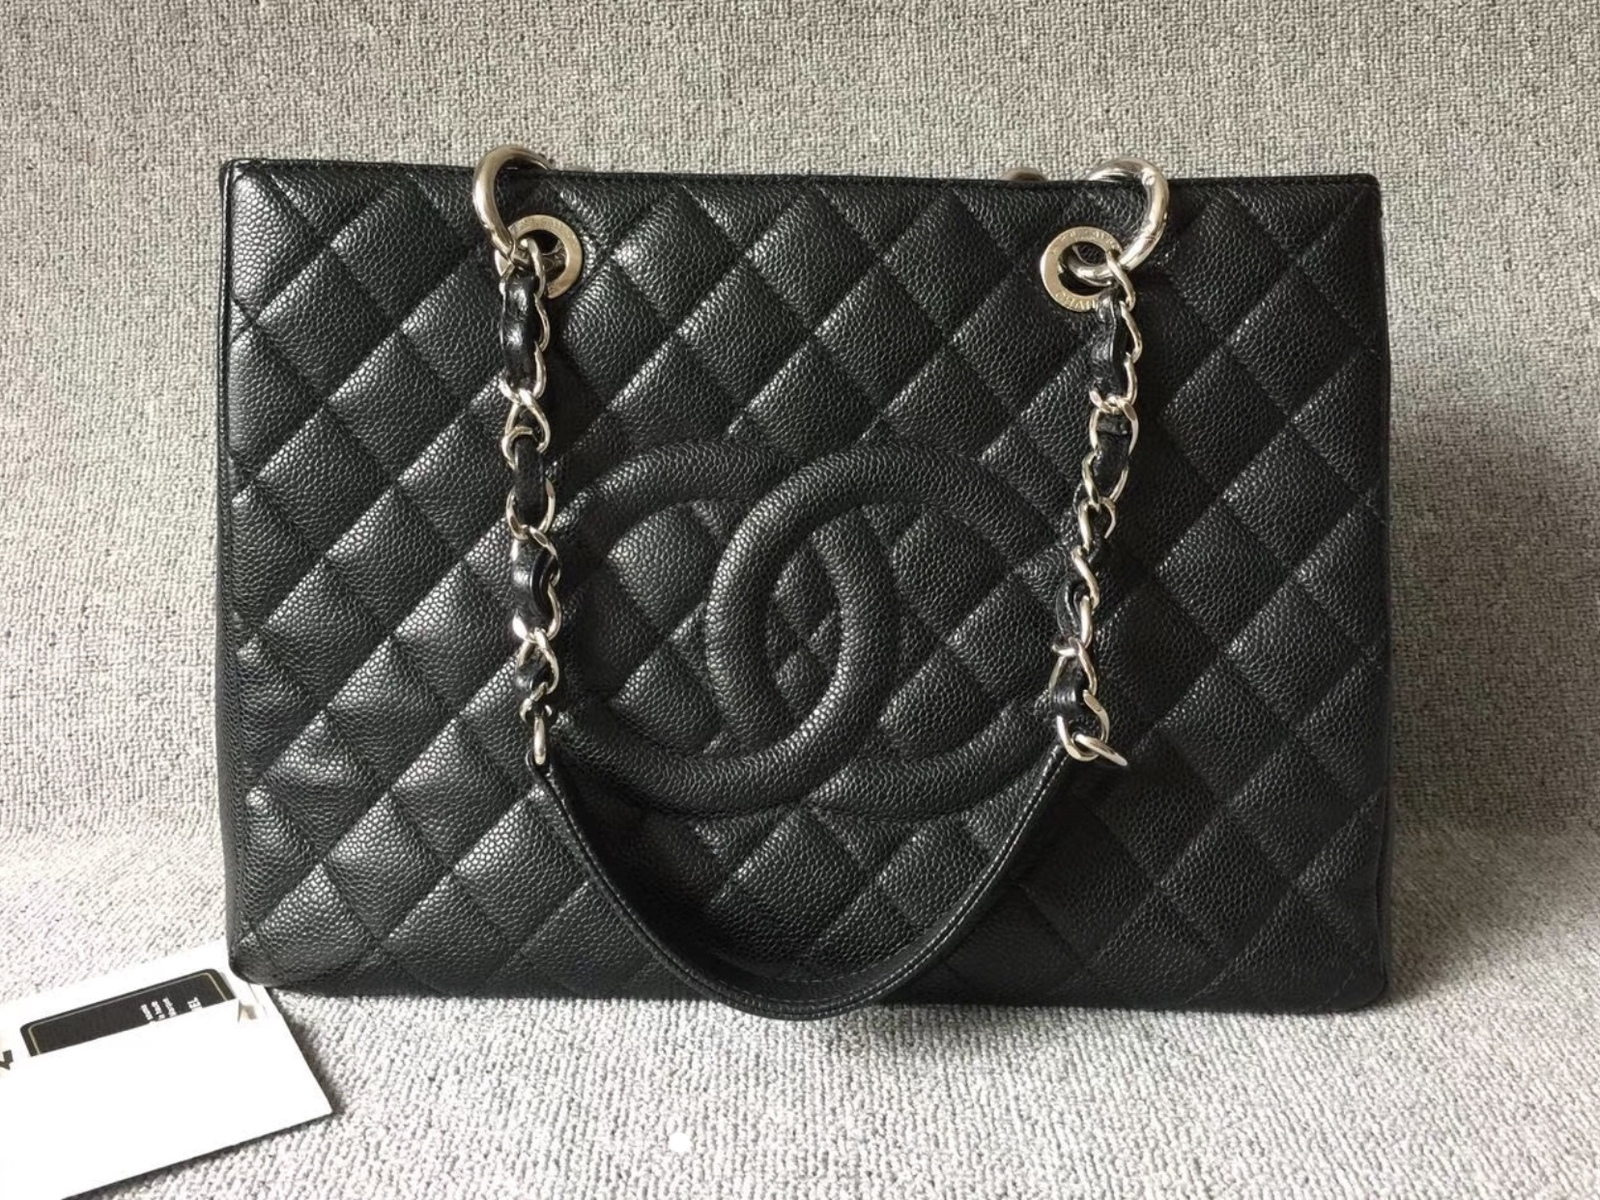 50a50416f83c AUTH CHANEL QUILTED CAVIAR GST WITH RECEIPT GRAND SHOPPING TOTE BAG ...